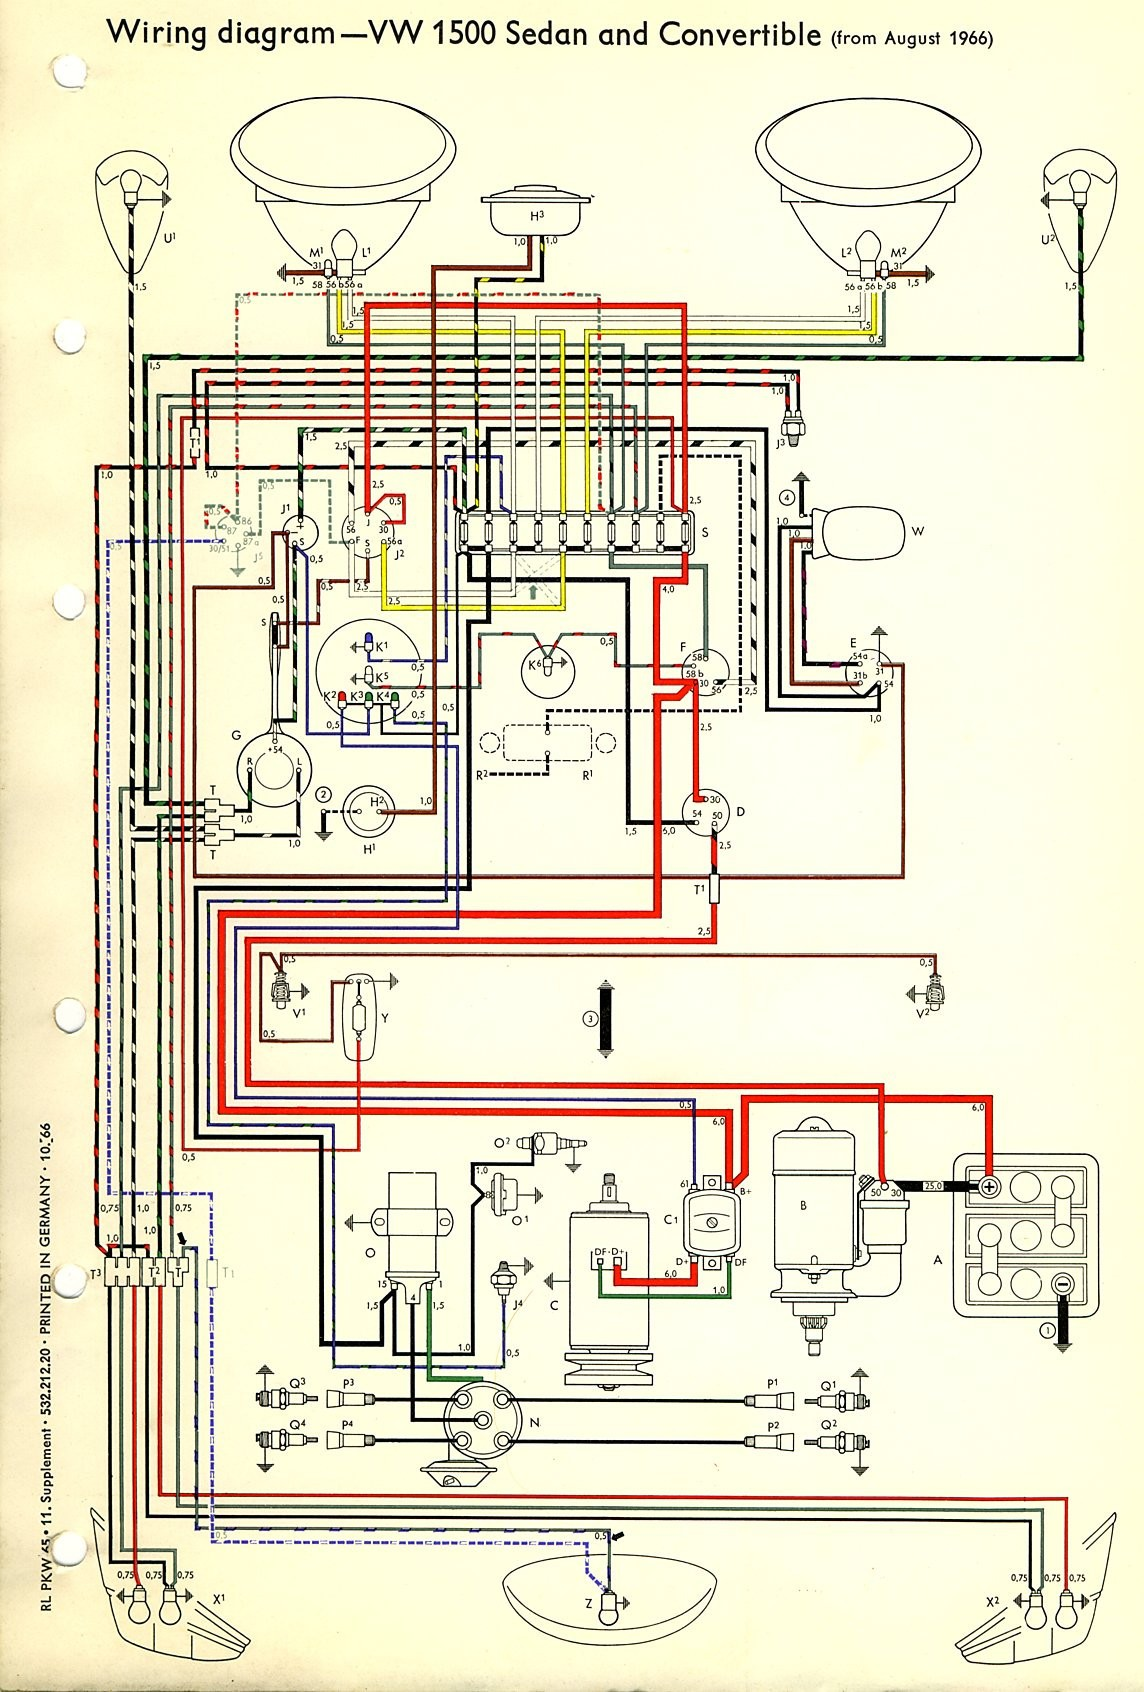 1971 Vw Beetle Alternator Wiring Diagram Air Cooled 74 On Elegant Super Image